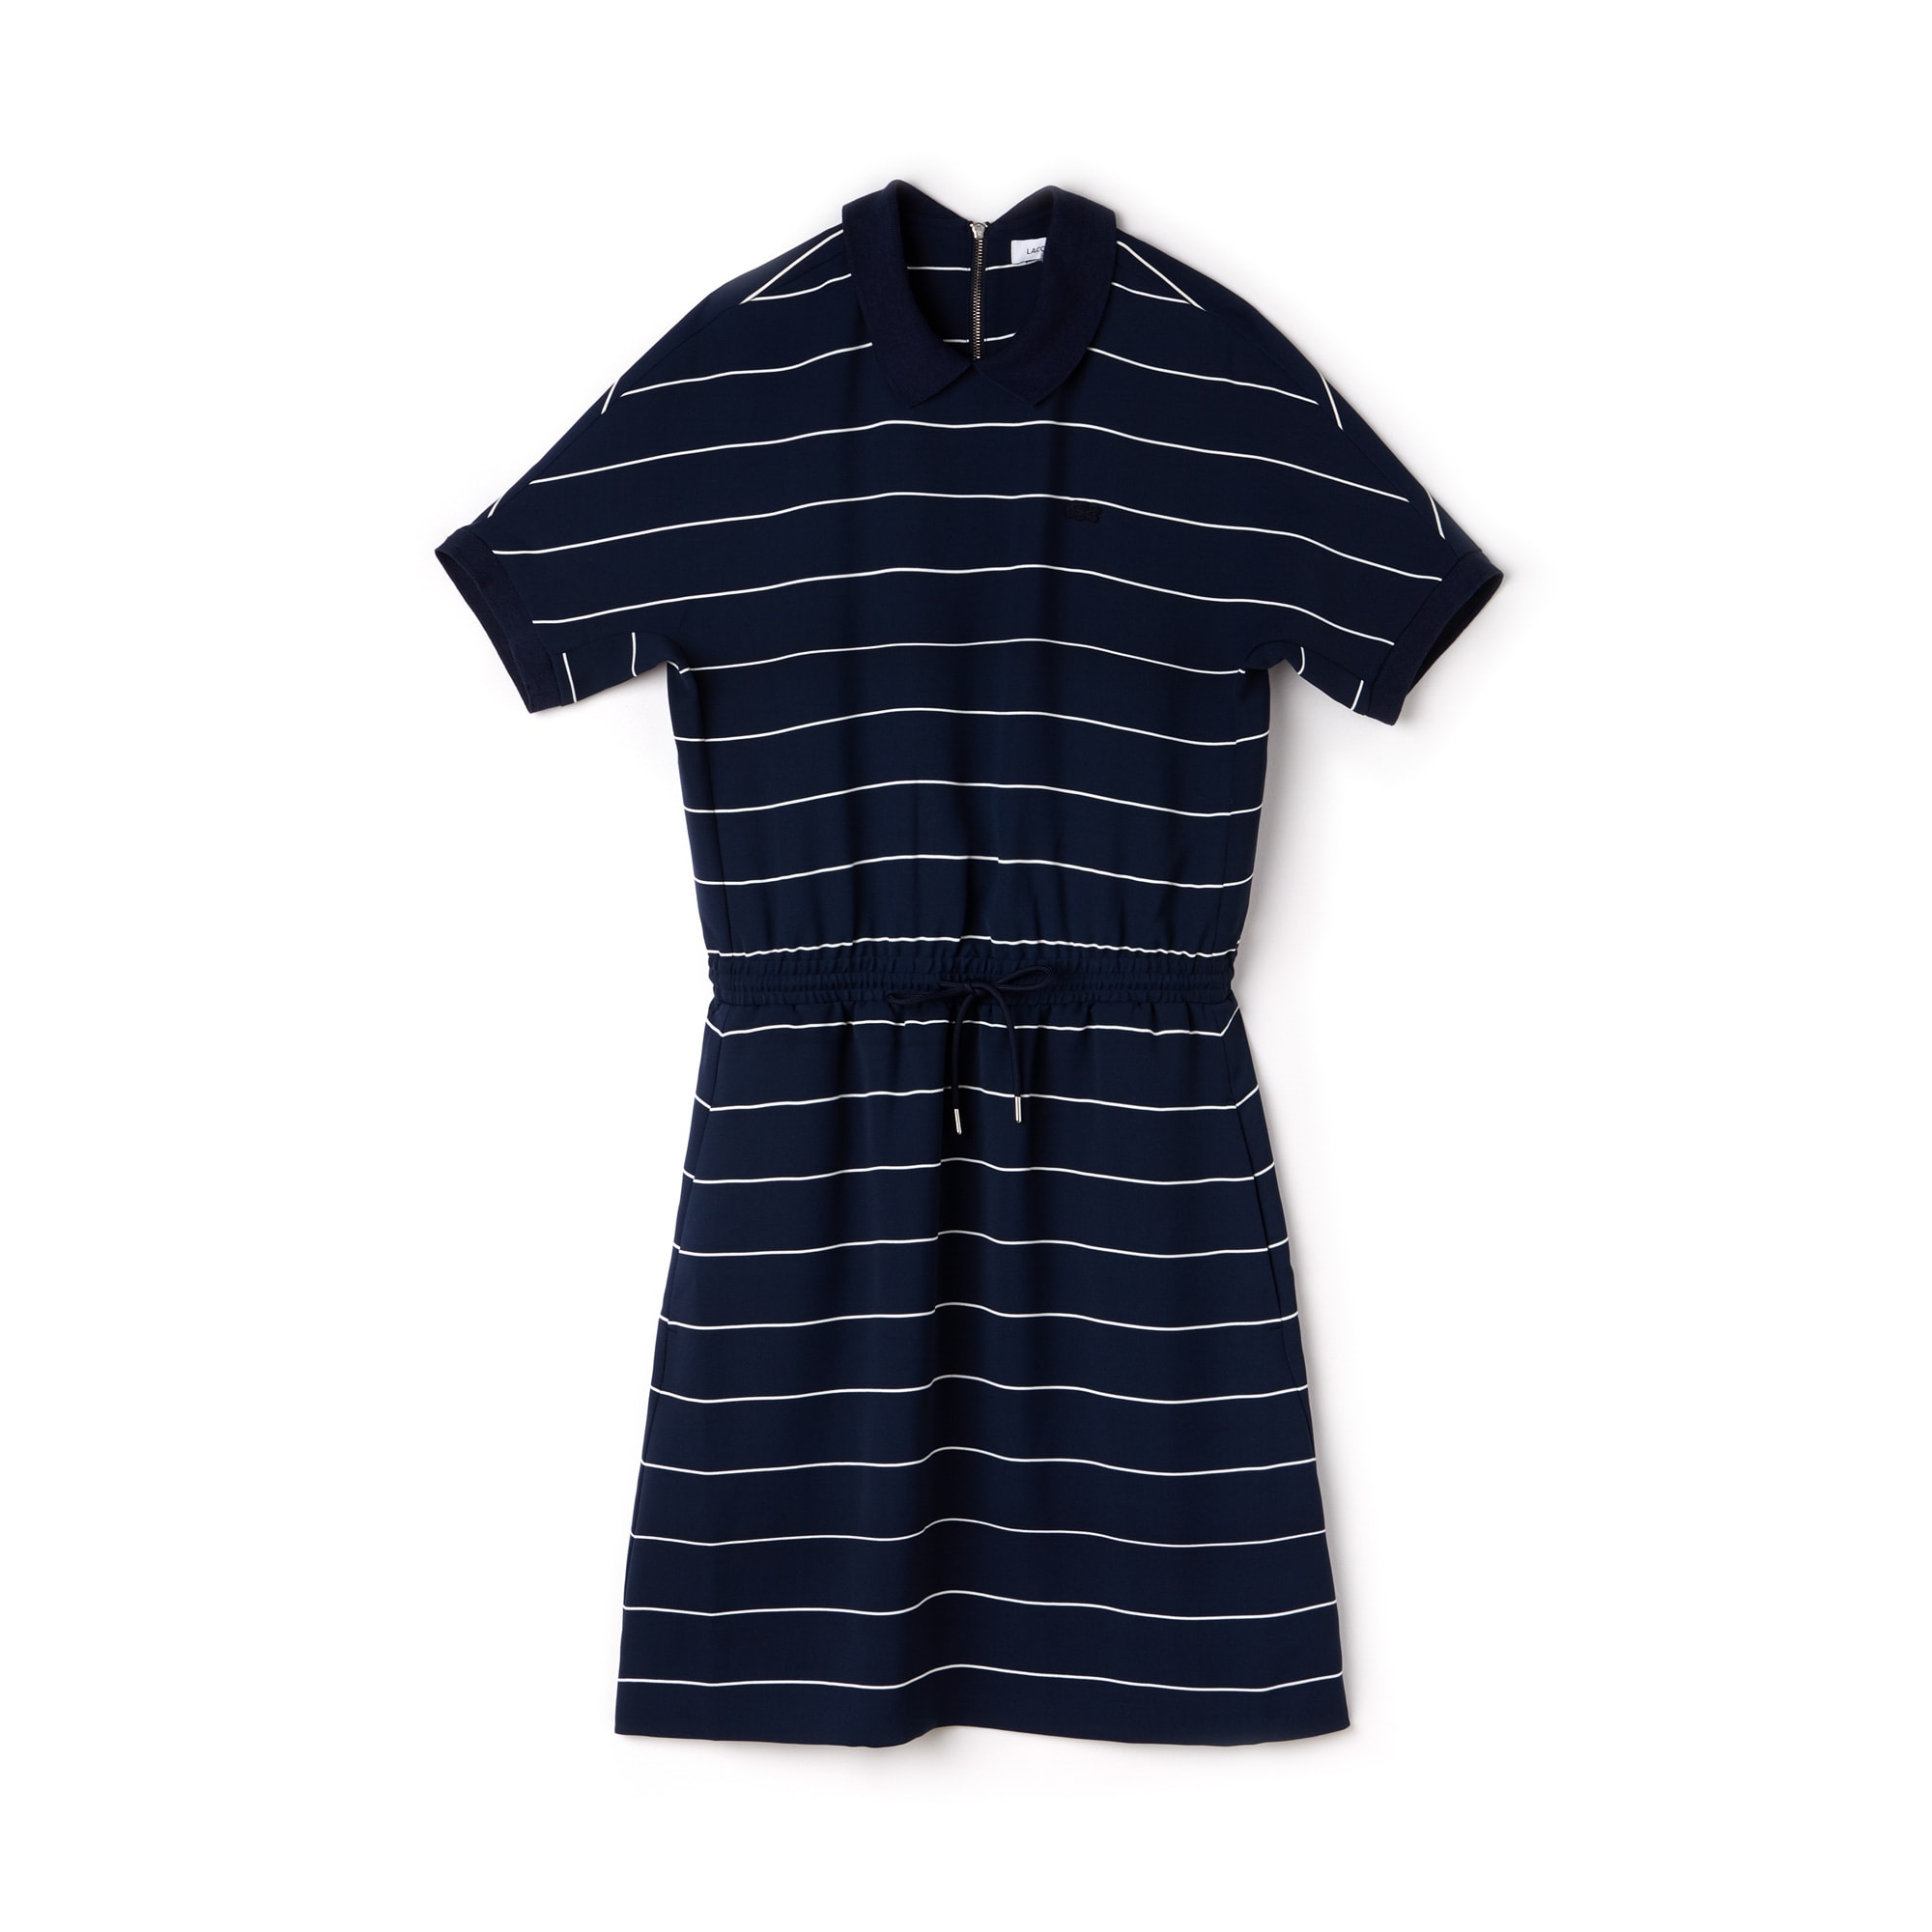 Women's Elasticized Waistband Flowing Striped Cady Knit Polo Dress